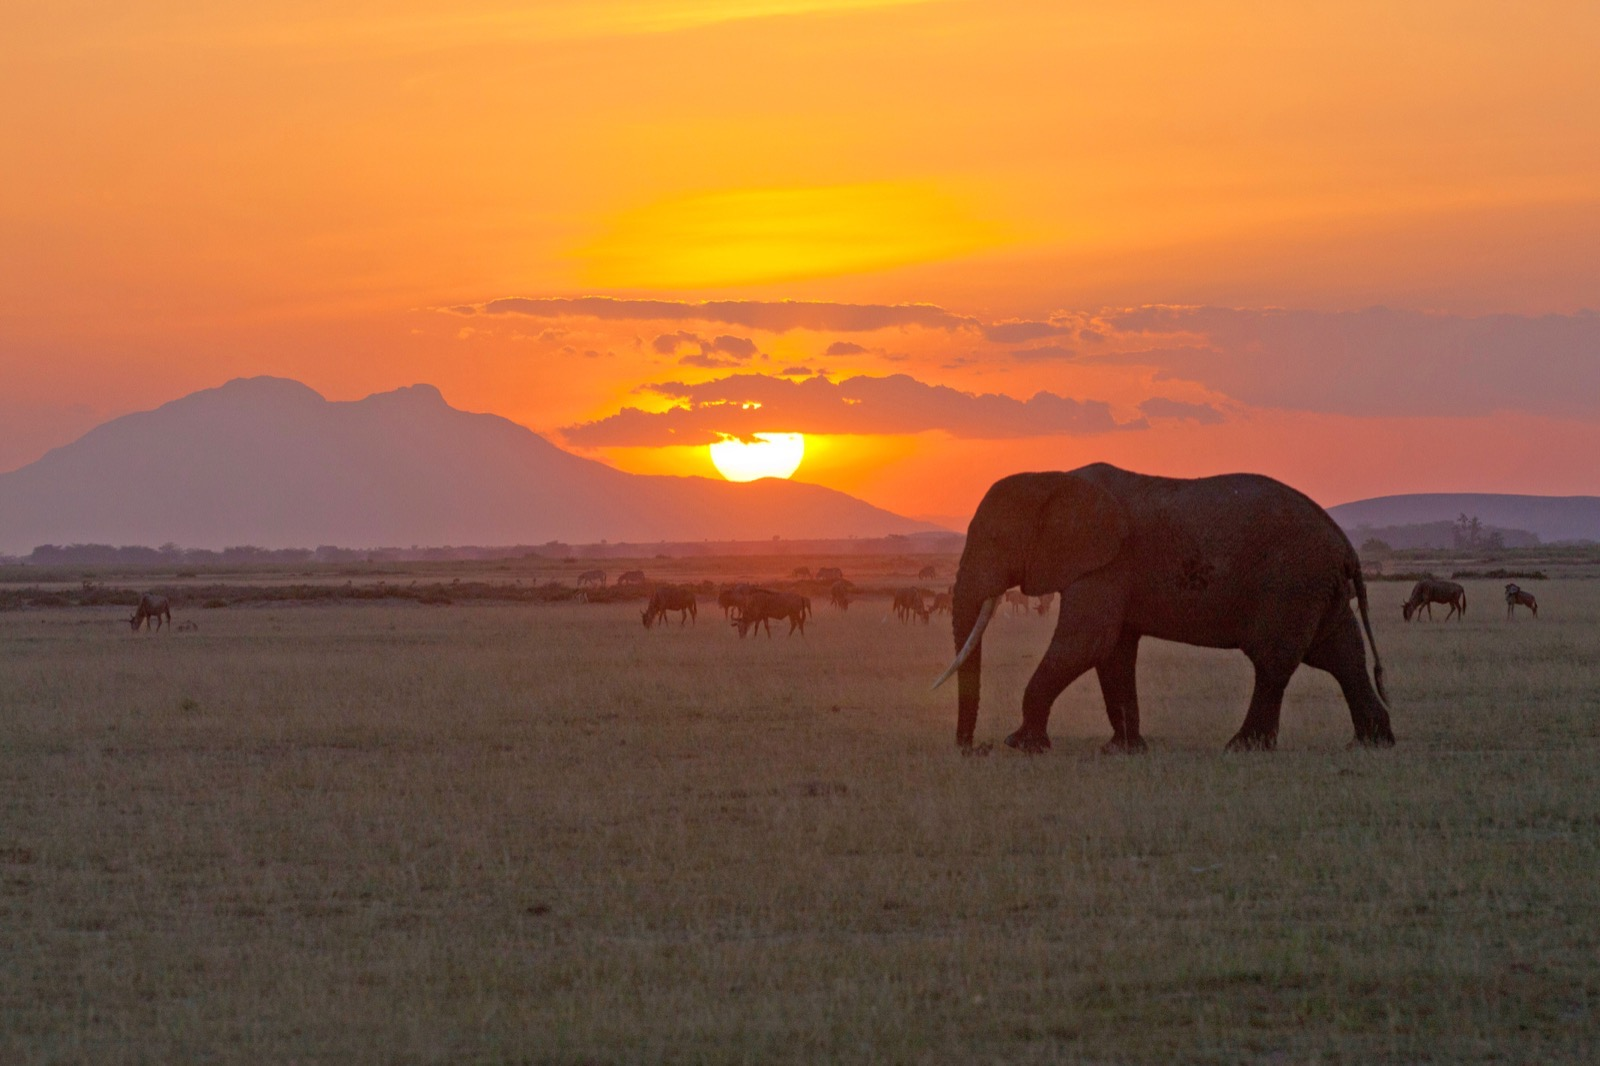 A large elephant is silhouetted in an open plain, with a striking sunset in the background.